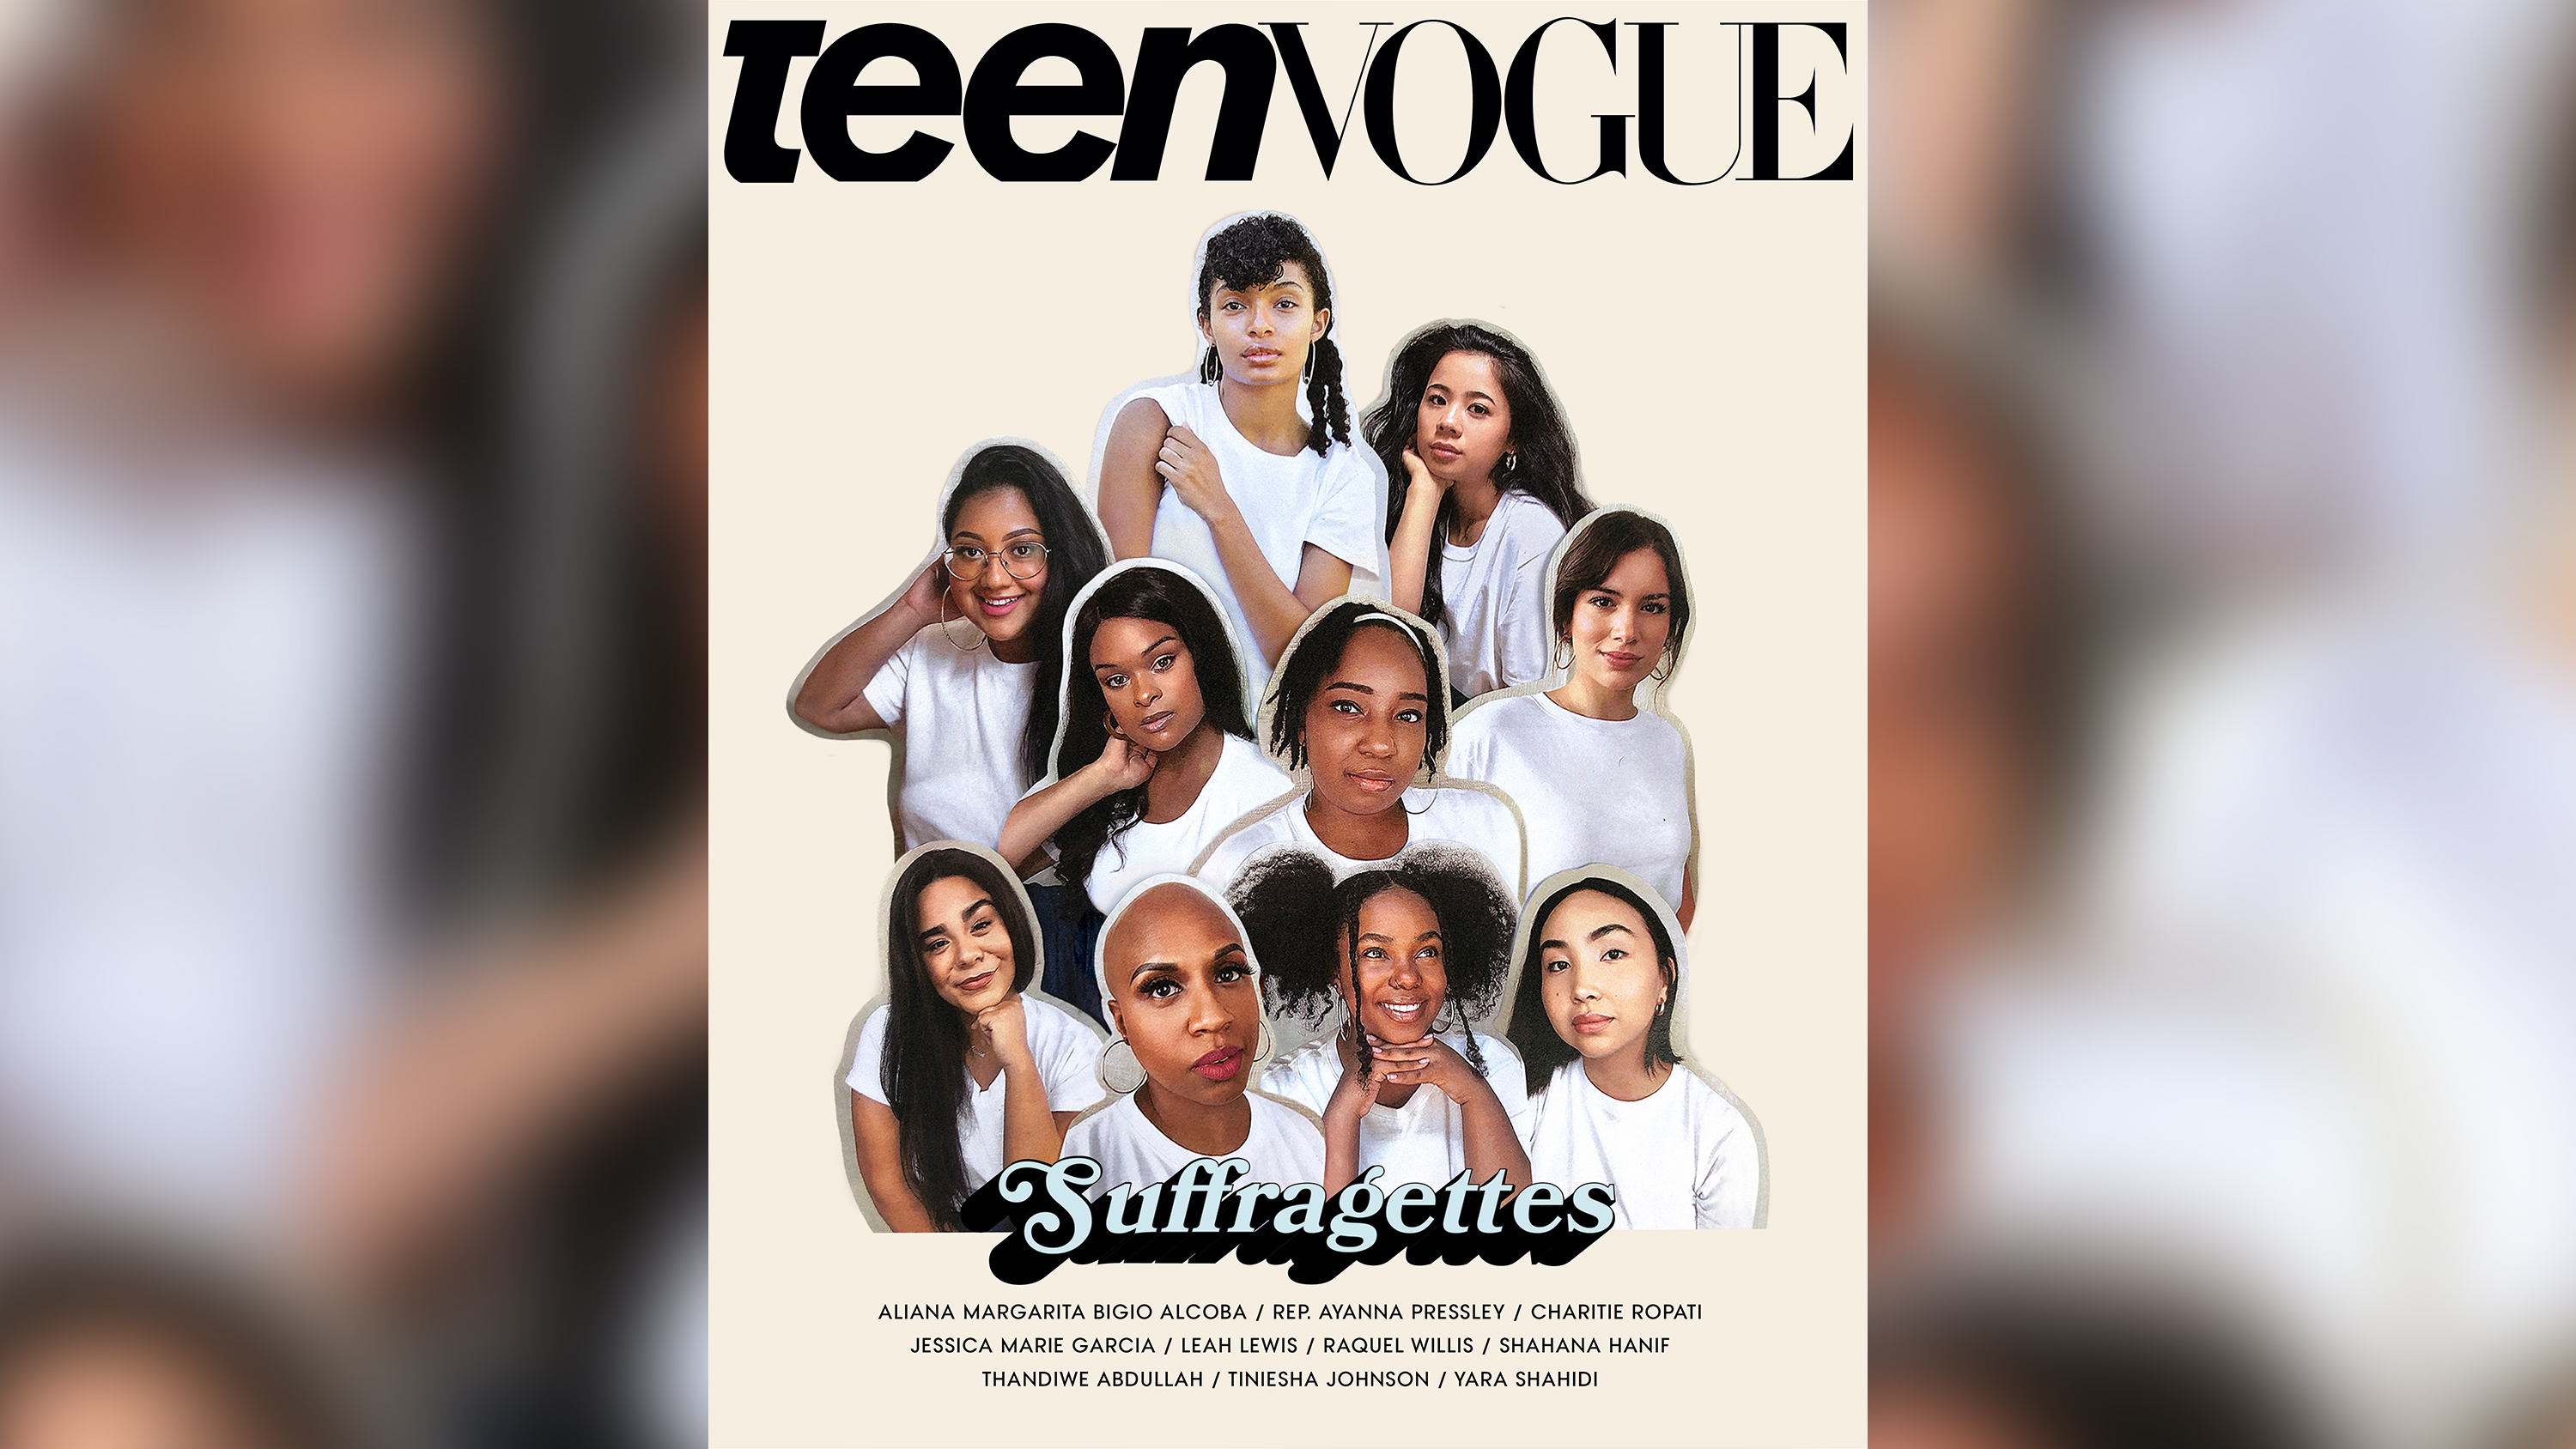 Teen Vogue's August issue tackles voter suppression